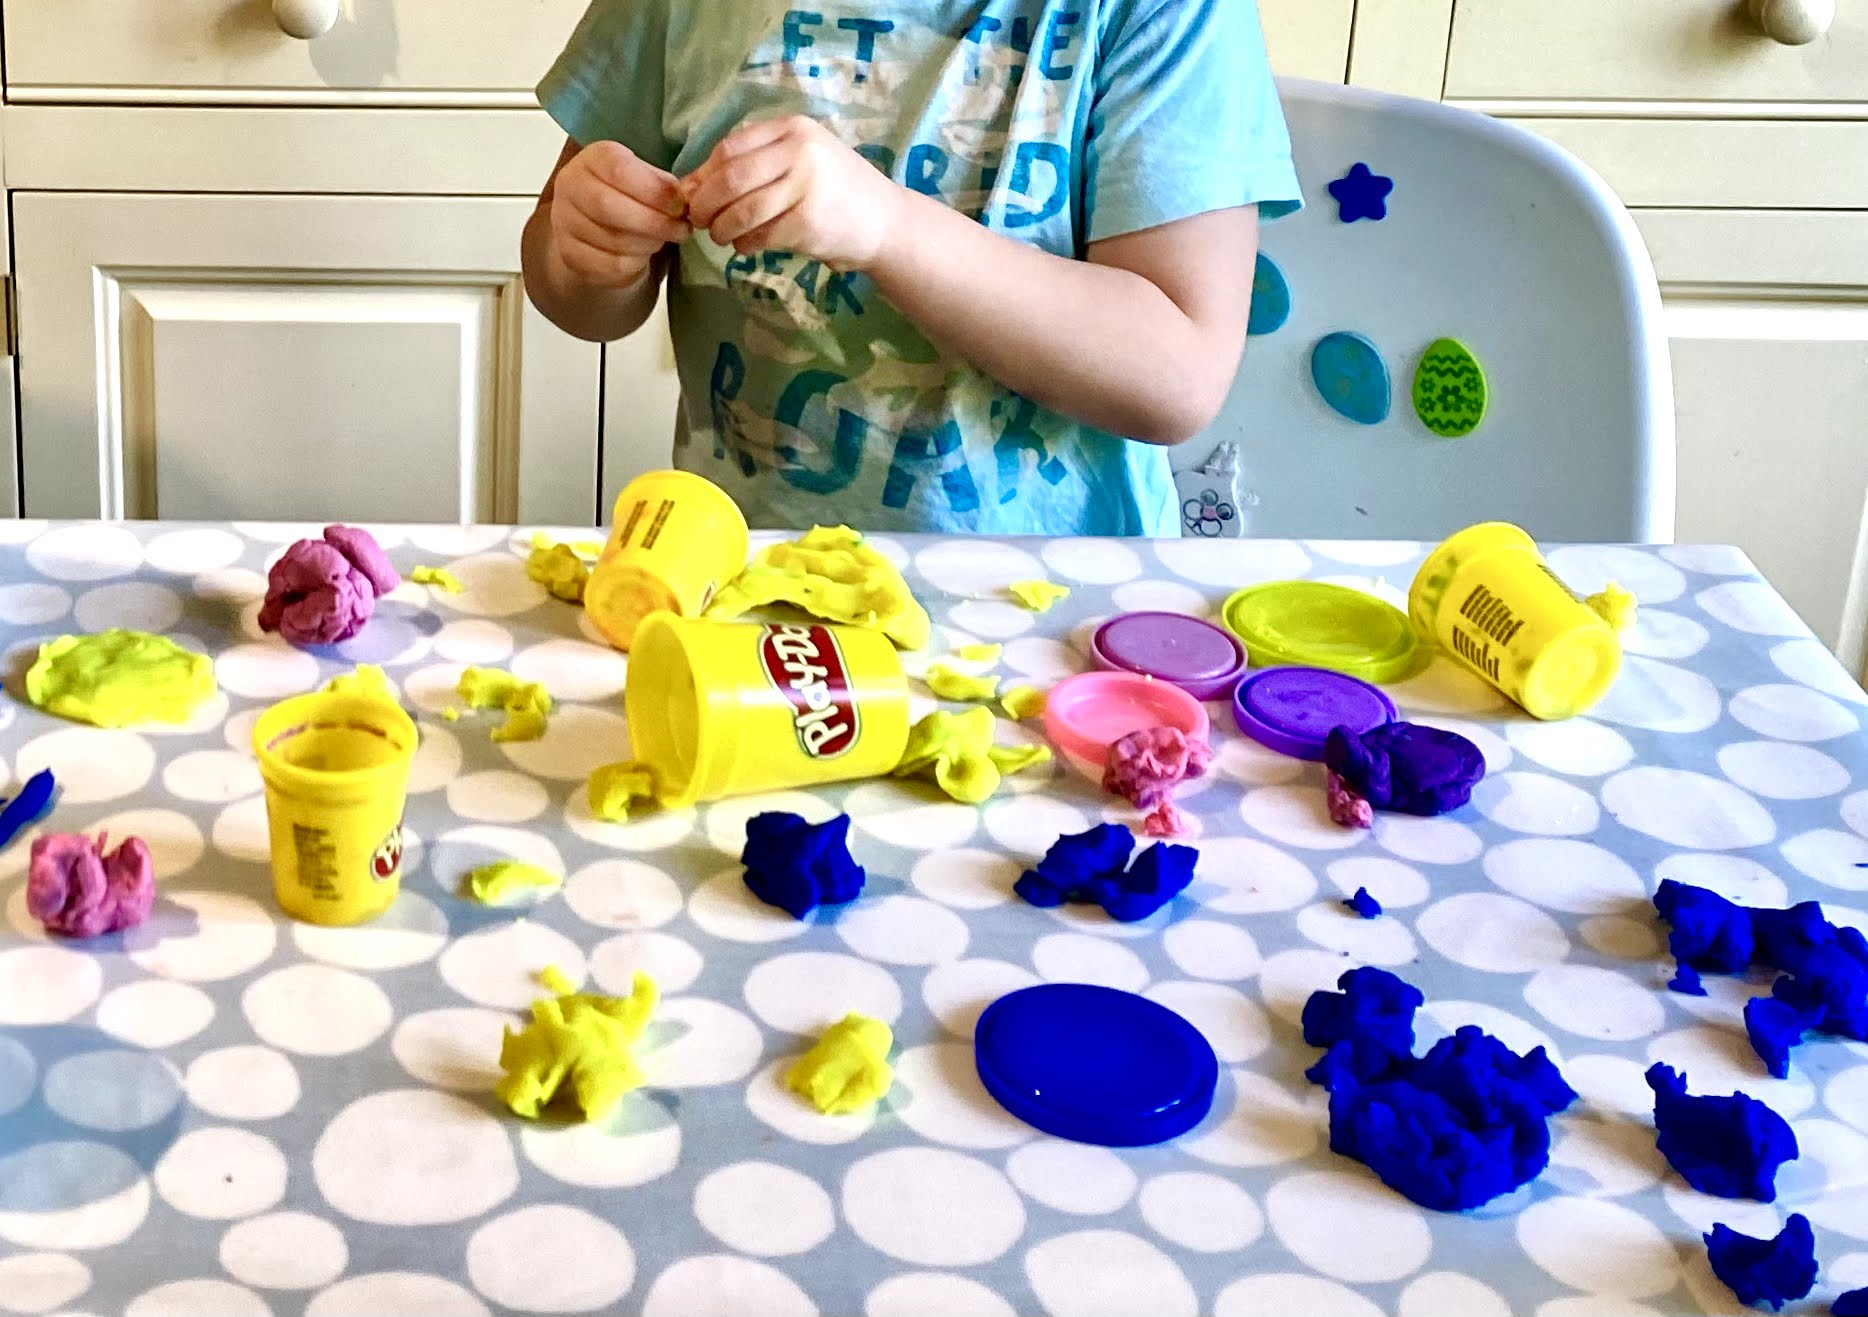 Blue, yellow and pink play-doh all over a table in separate clumps